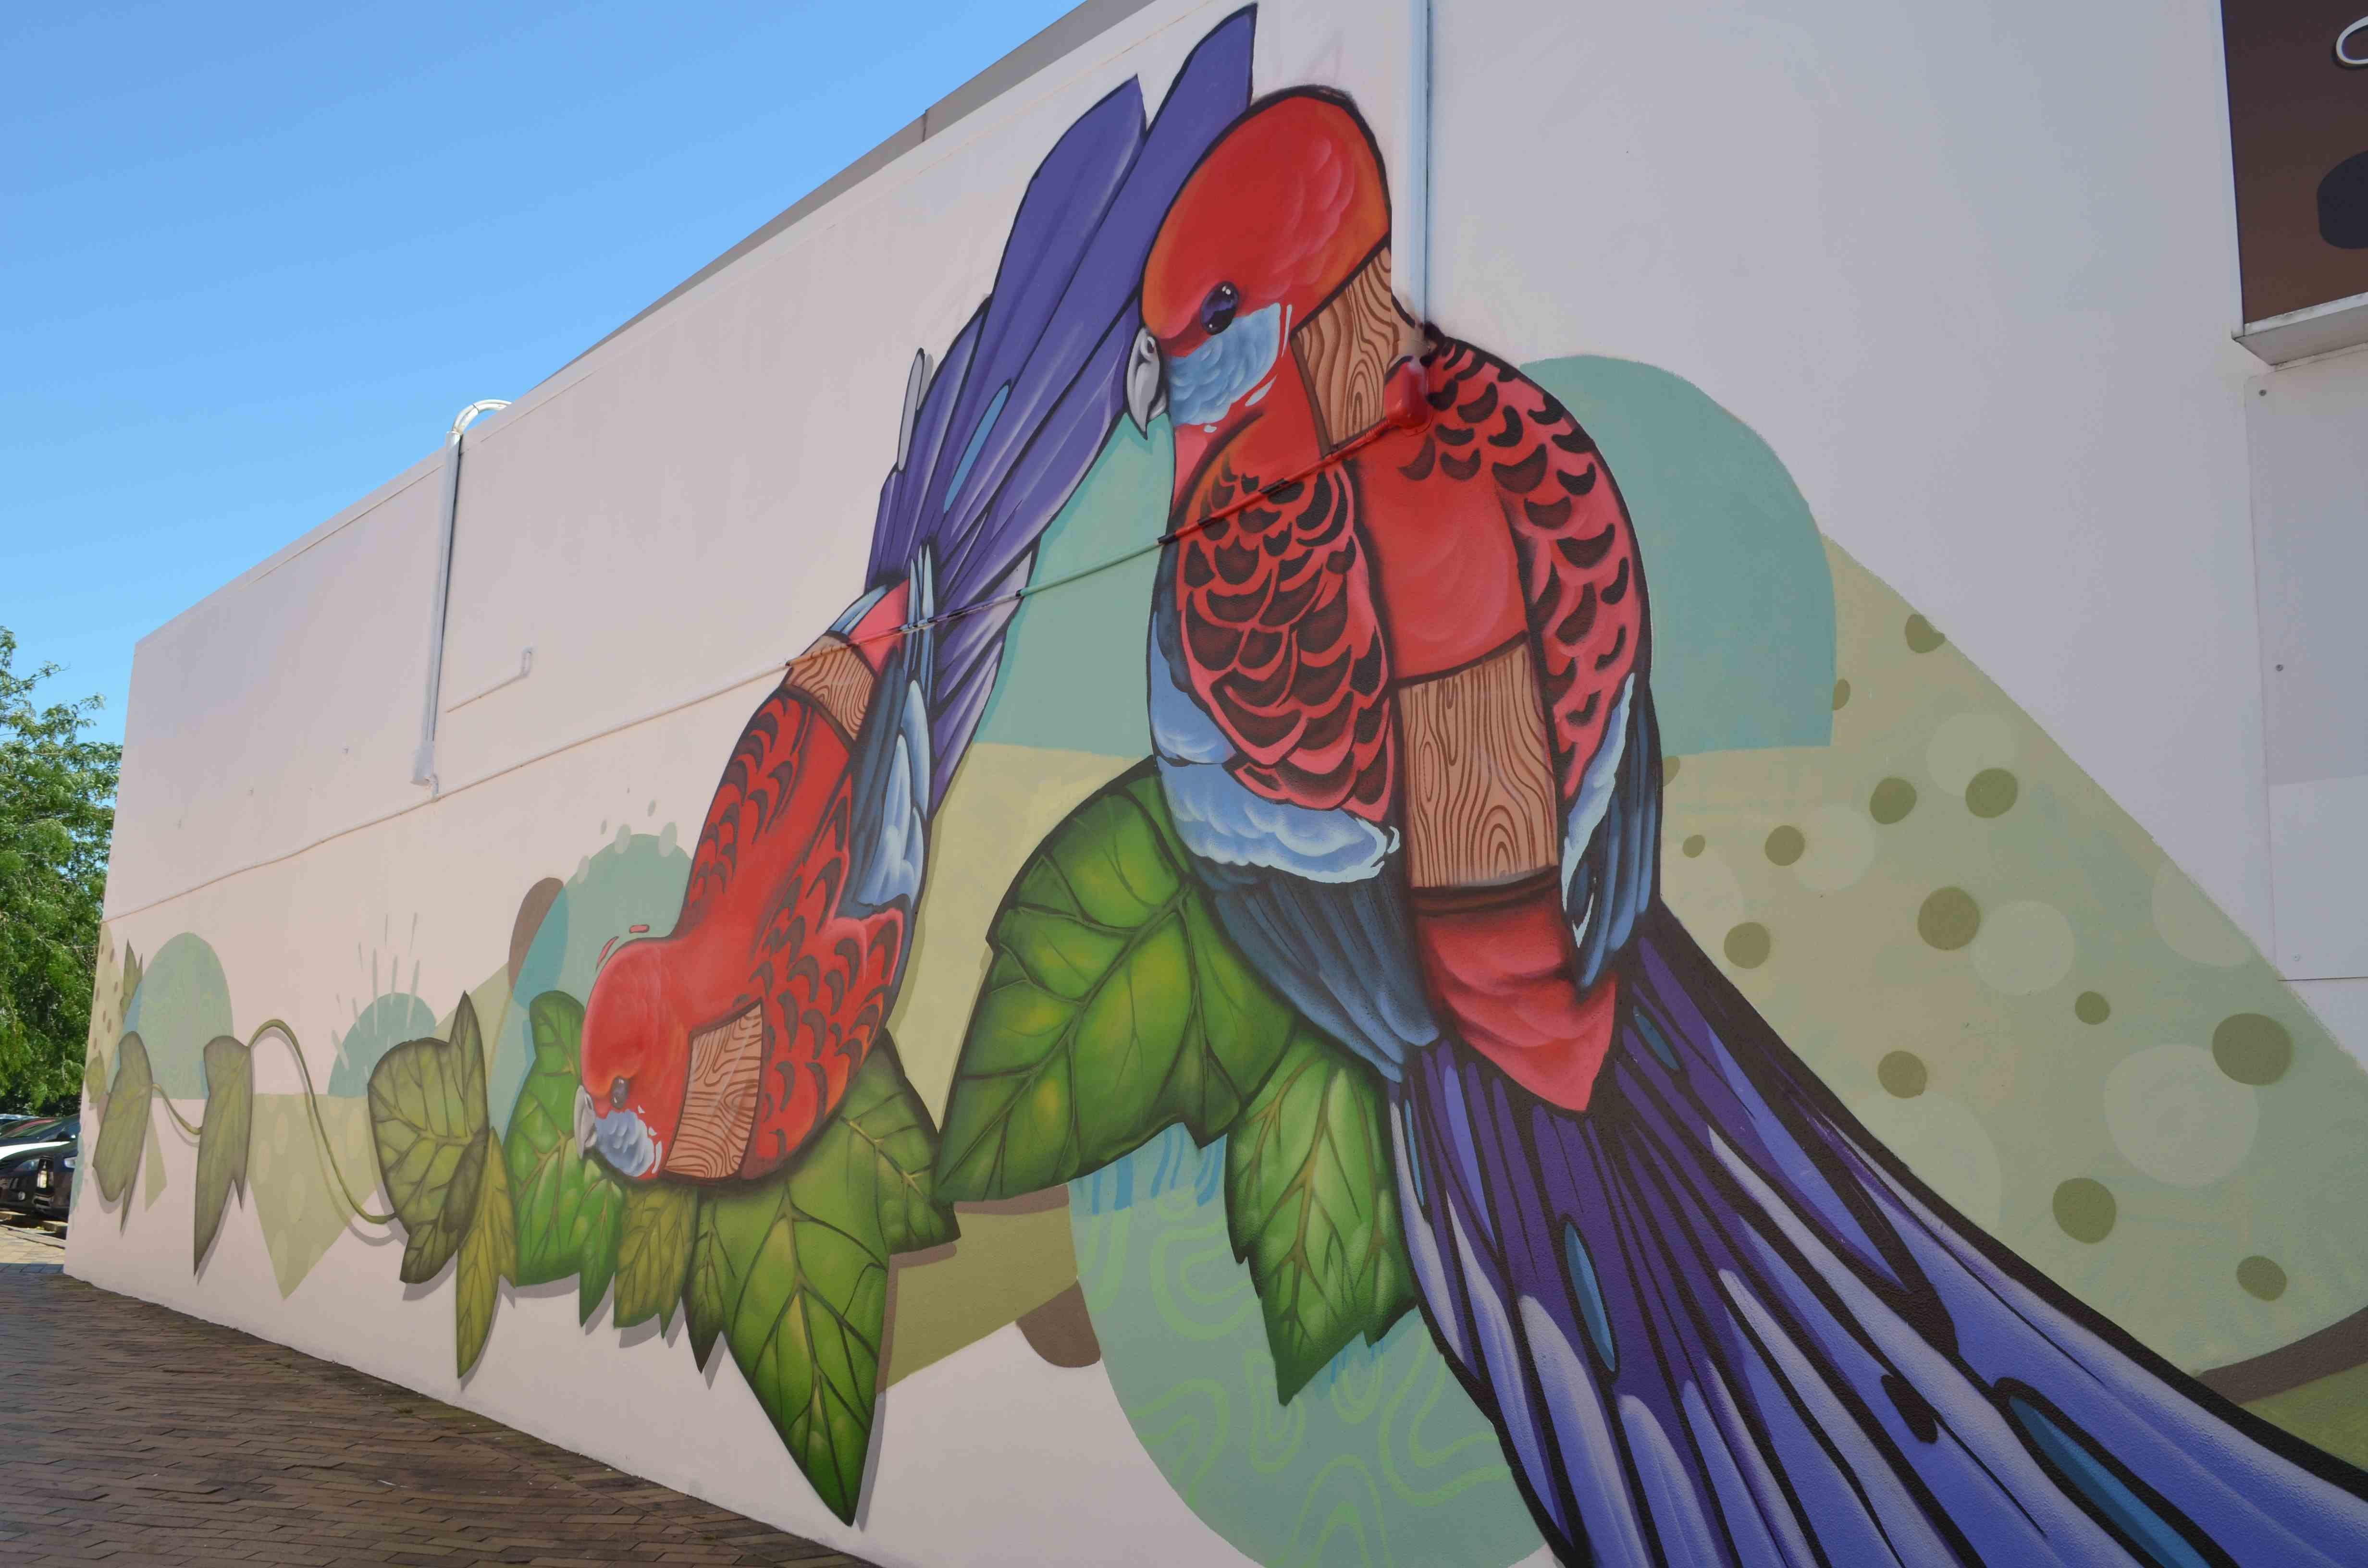 New Mural - Artist Janne Atron Krimsone commissioned by Chase Murray